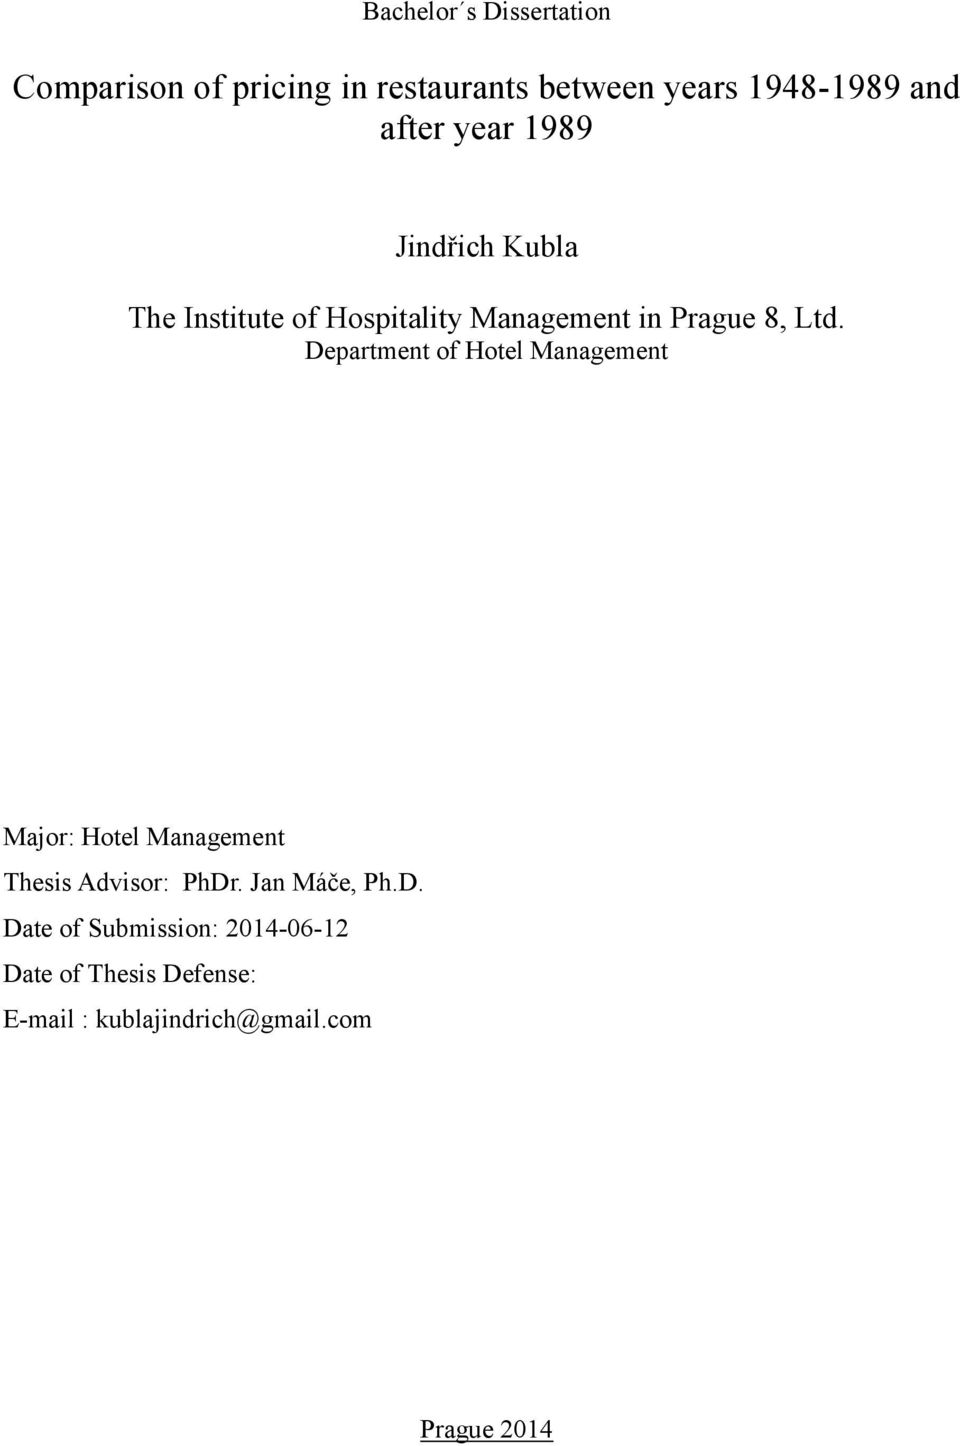 Department of Hotel Management Major: Hotel Management Thesis Advisor: PhDr. Jan Máče, Ph.D. Date of Submission: 2014-06-12 Date of Thesis Defense: E-mail : kublajindrich@gmail.